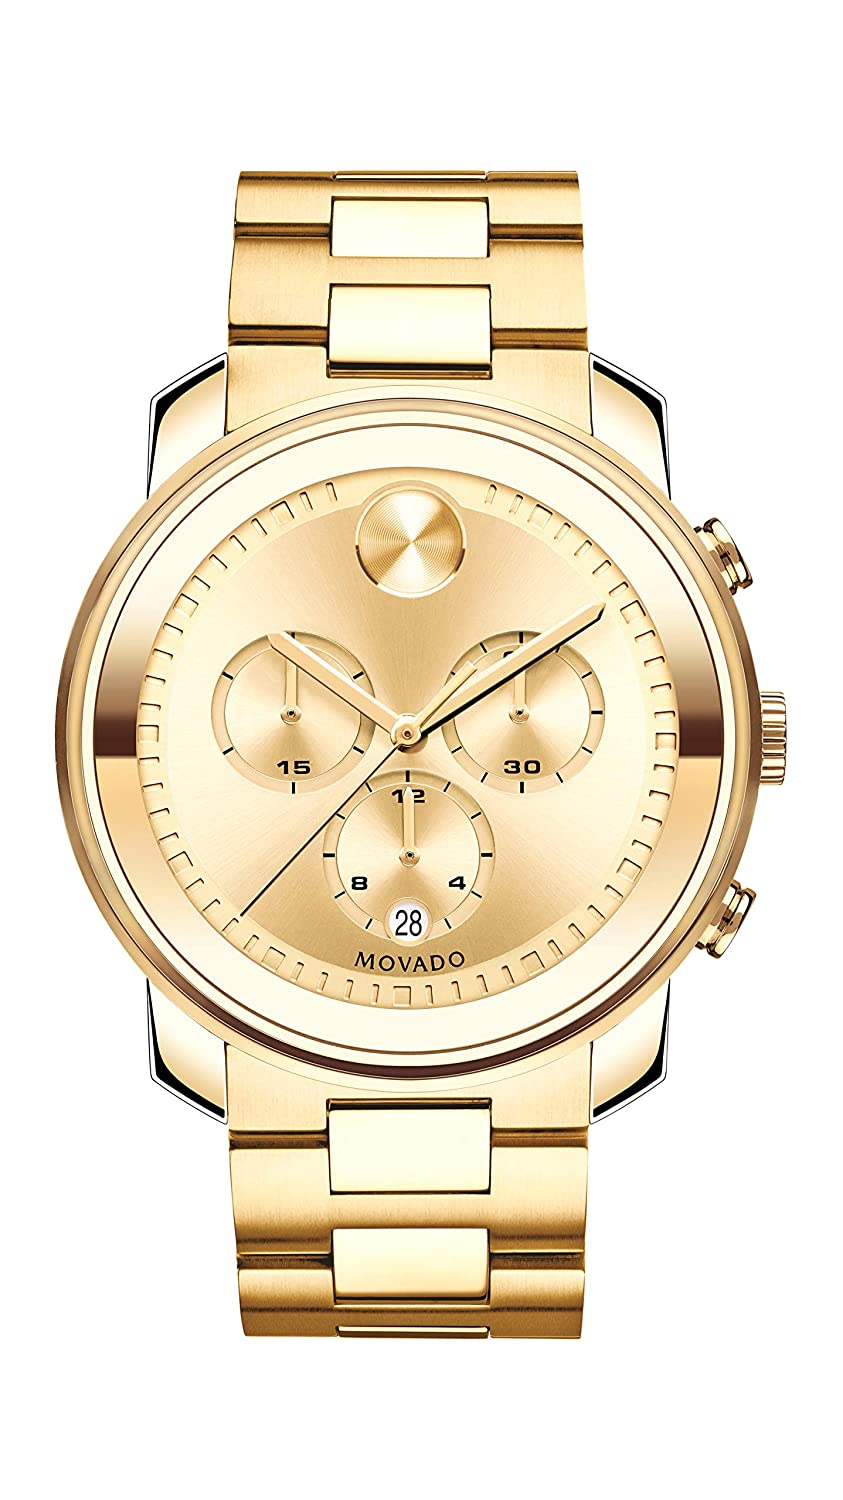 Invicta Men s Bolt Quartz Chronograph 52mm Watch with Stainless-Steel Strap, Gold, 25.2